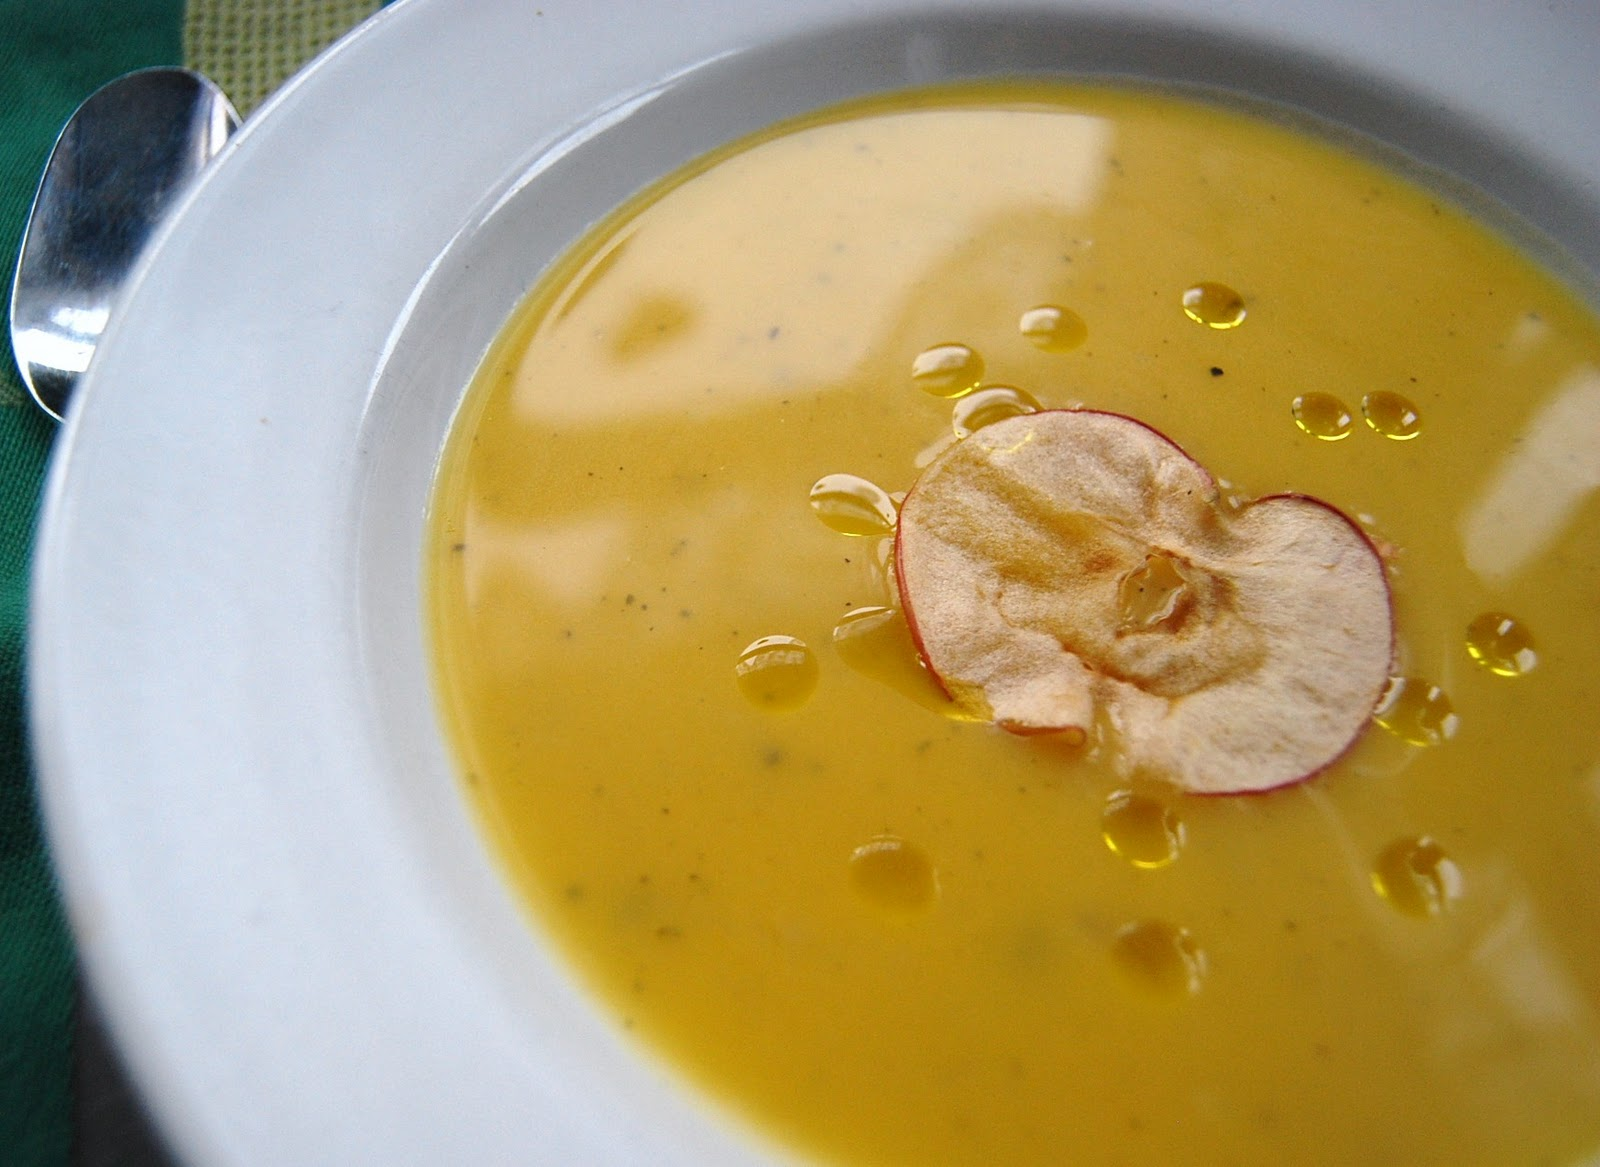 Home Fashionably: Roasted butternut squash and apple soup